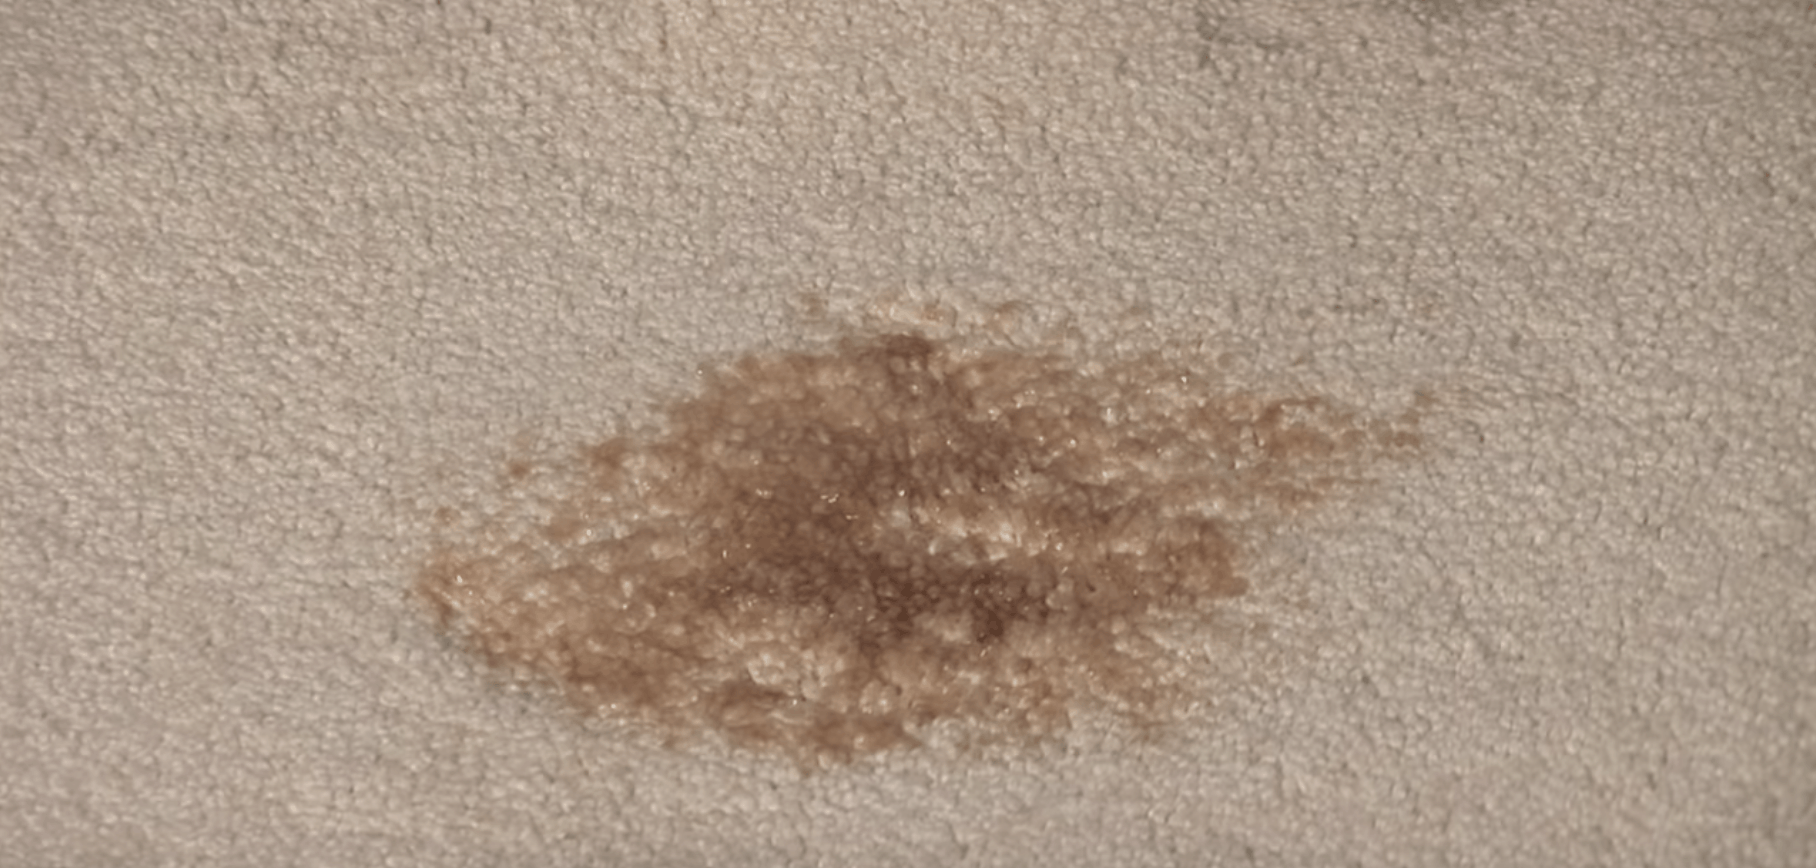 How To Remove Coke Stains From Carpet